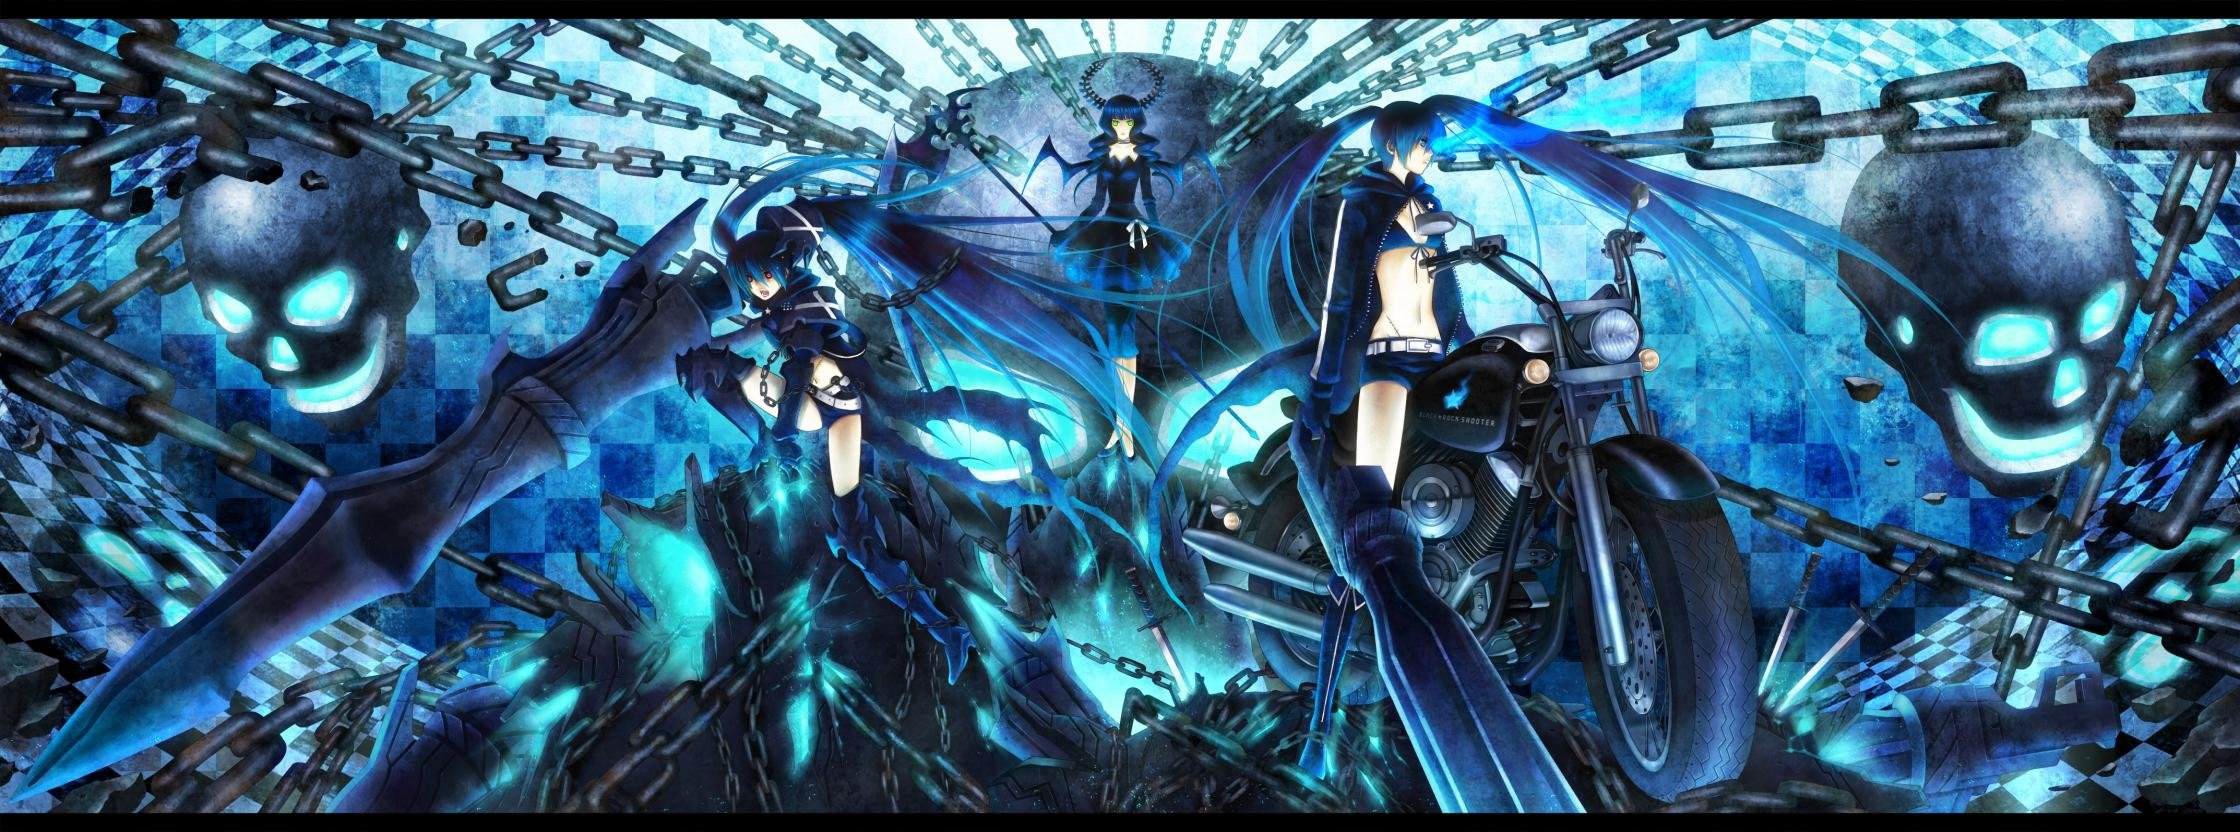 Dual Monitor Black Rock Shooter Wallpapers Hd Backgrounds